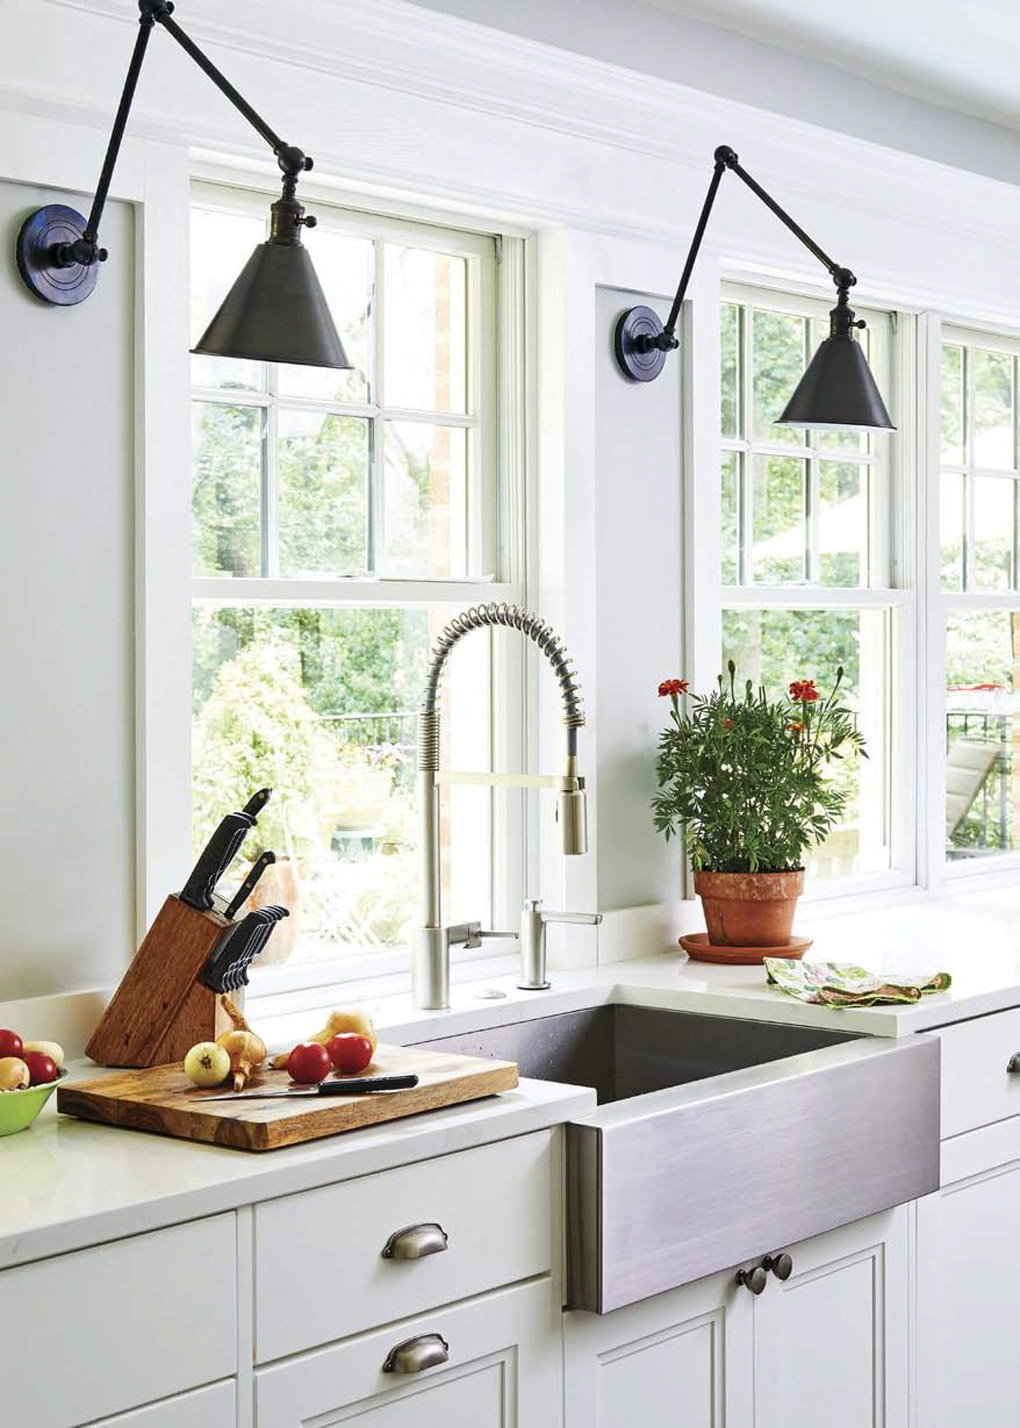 White kitchen with chrome farmhouse sink, chef's faucet and cutting board with fresh fruit.